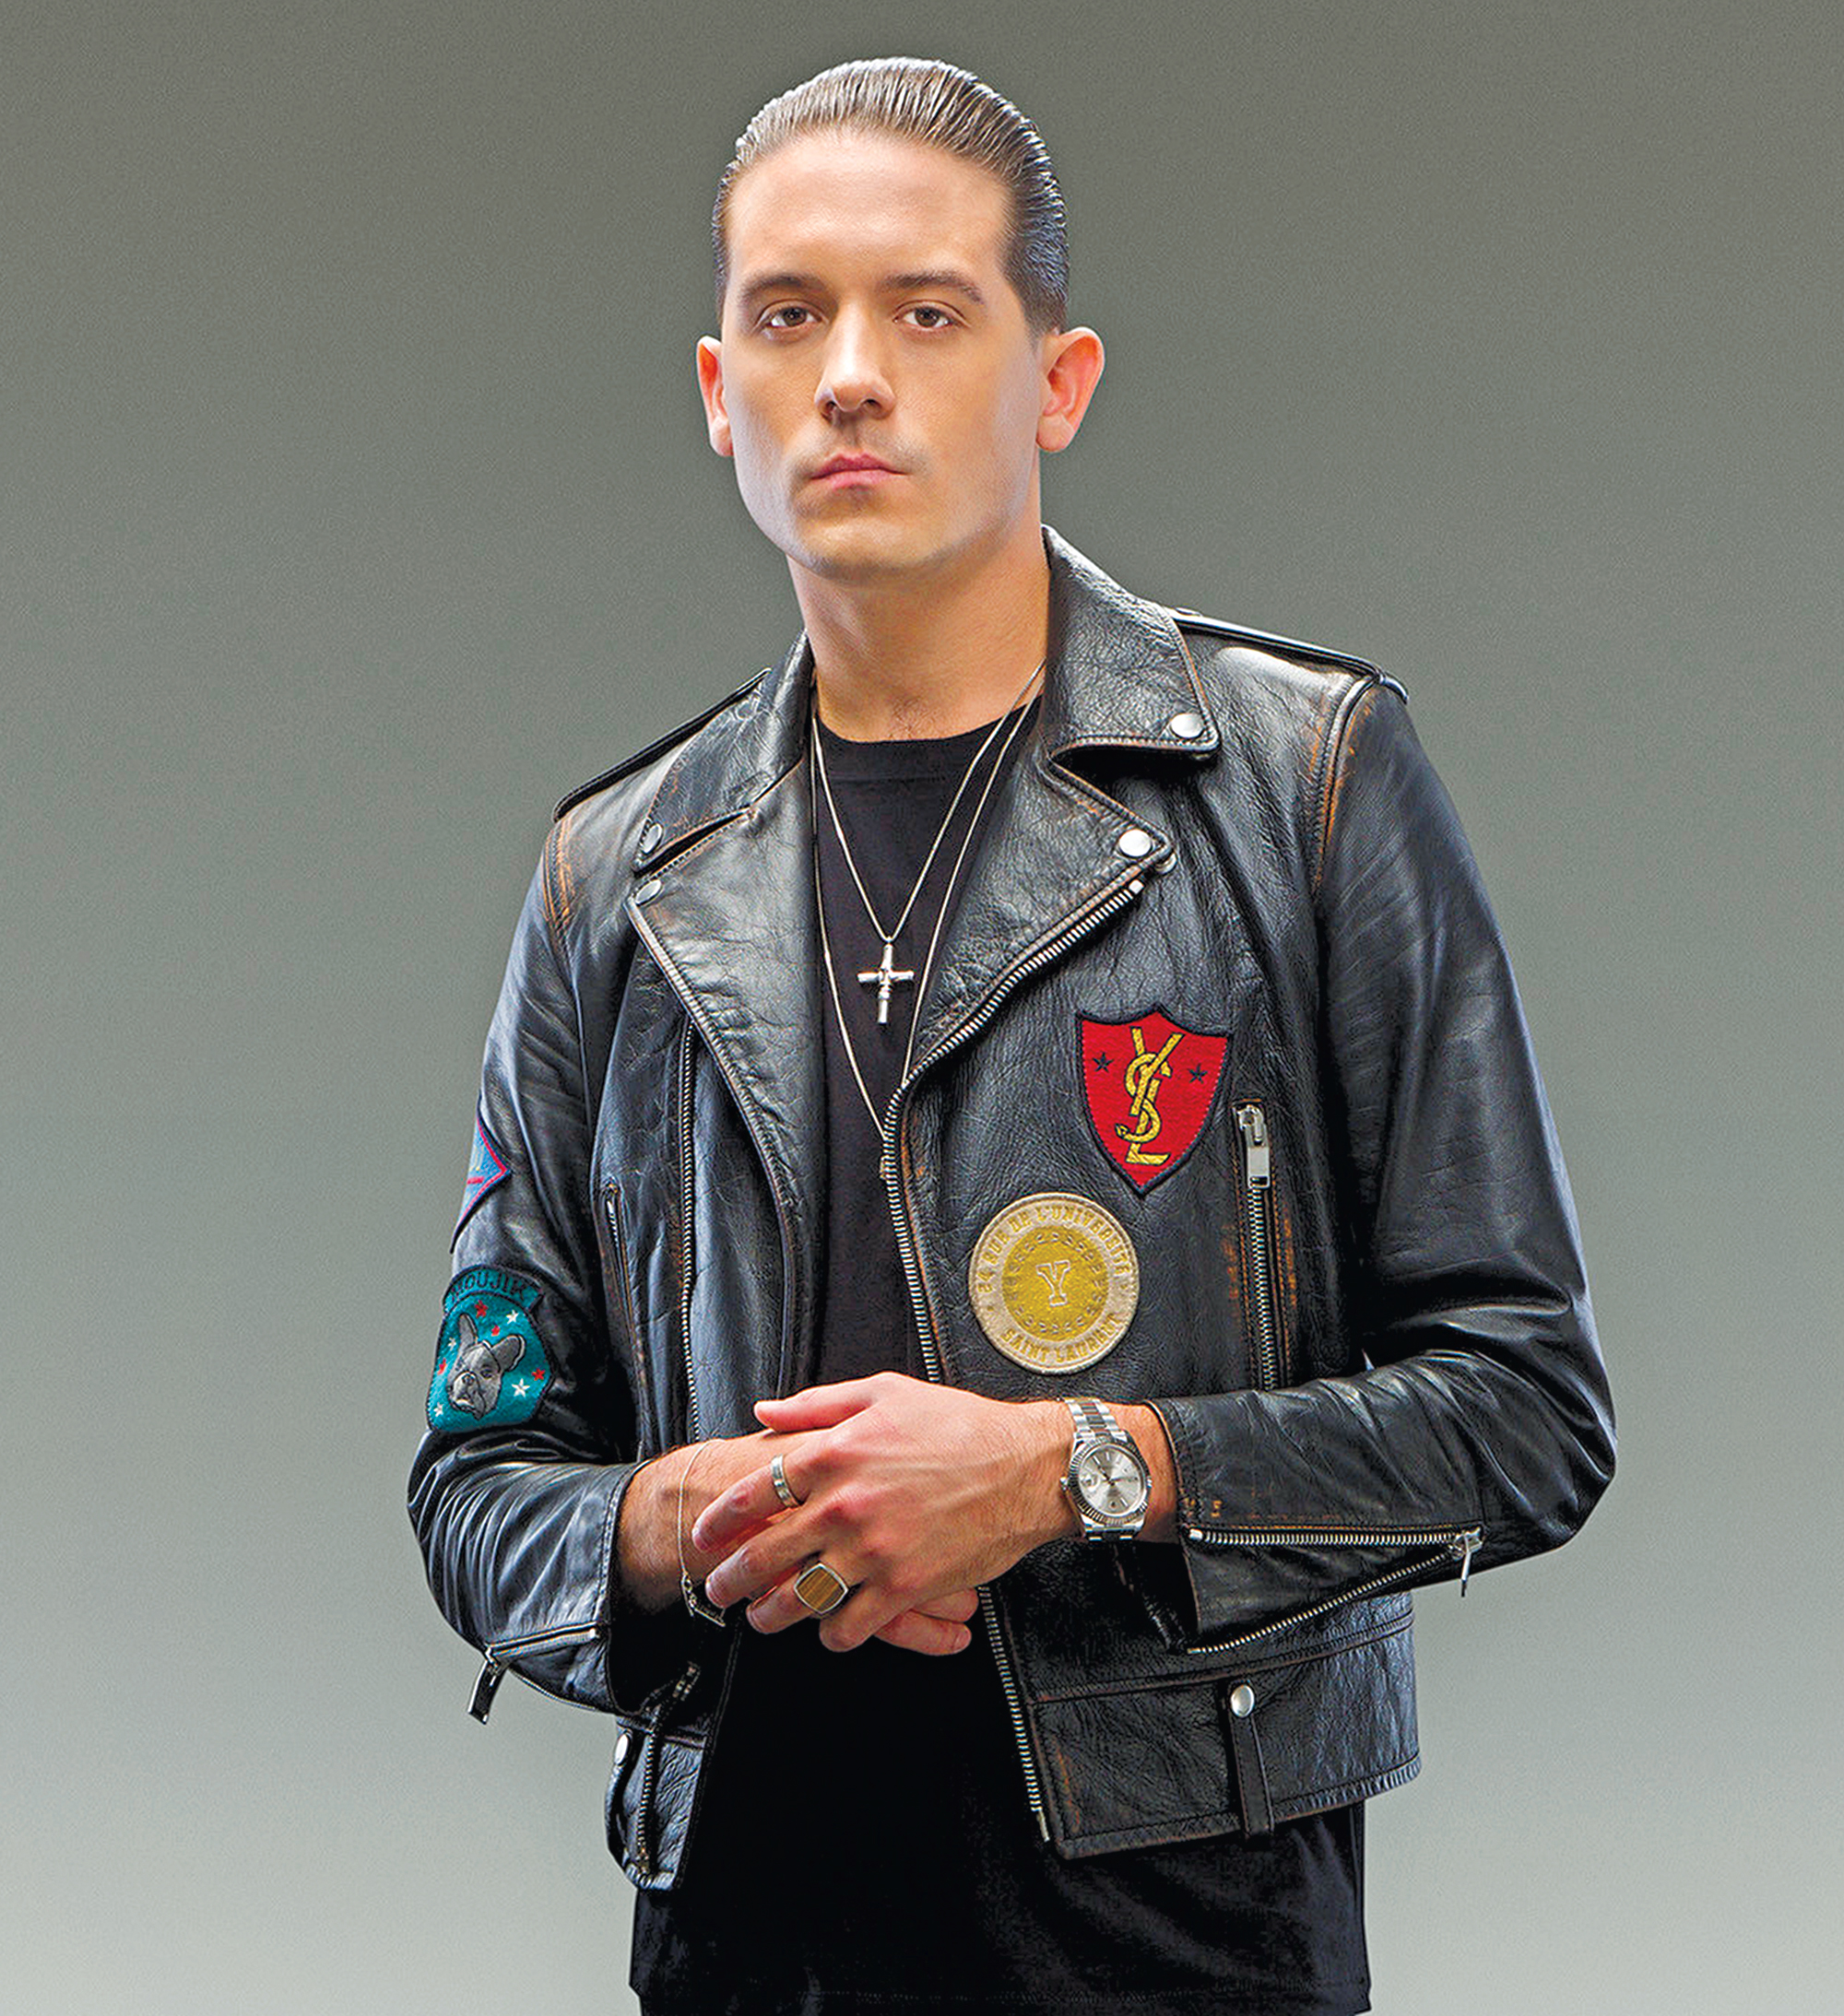 G Eazy  25 Things You Don t Know About Me